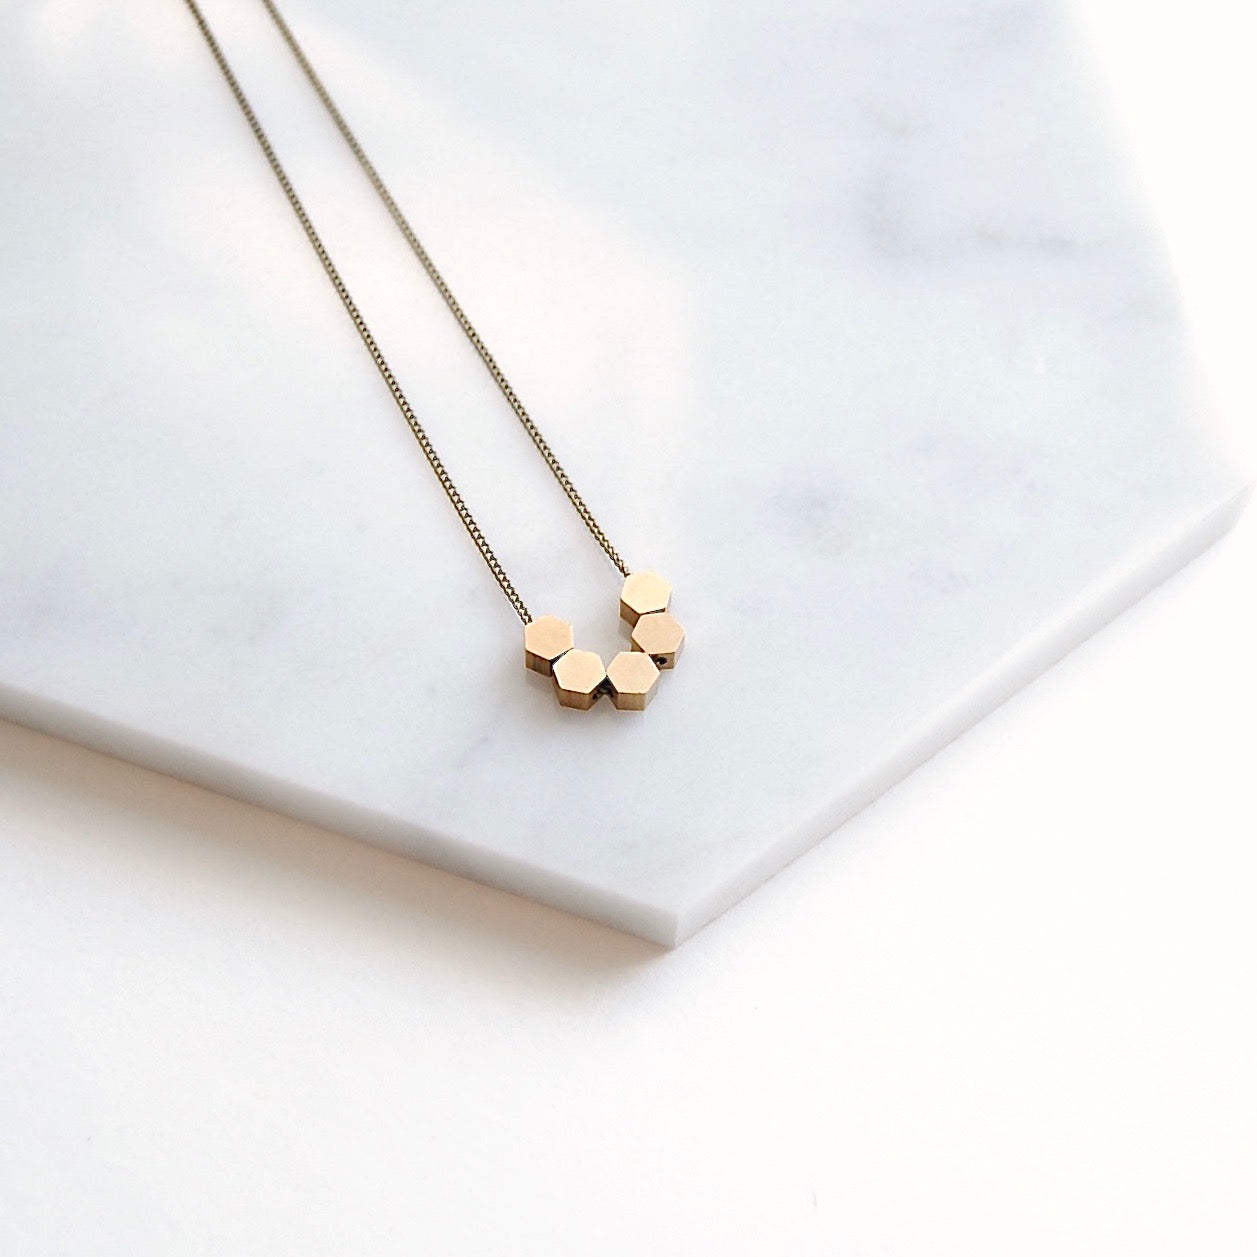 TINY HEXAGONS NECKLACE